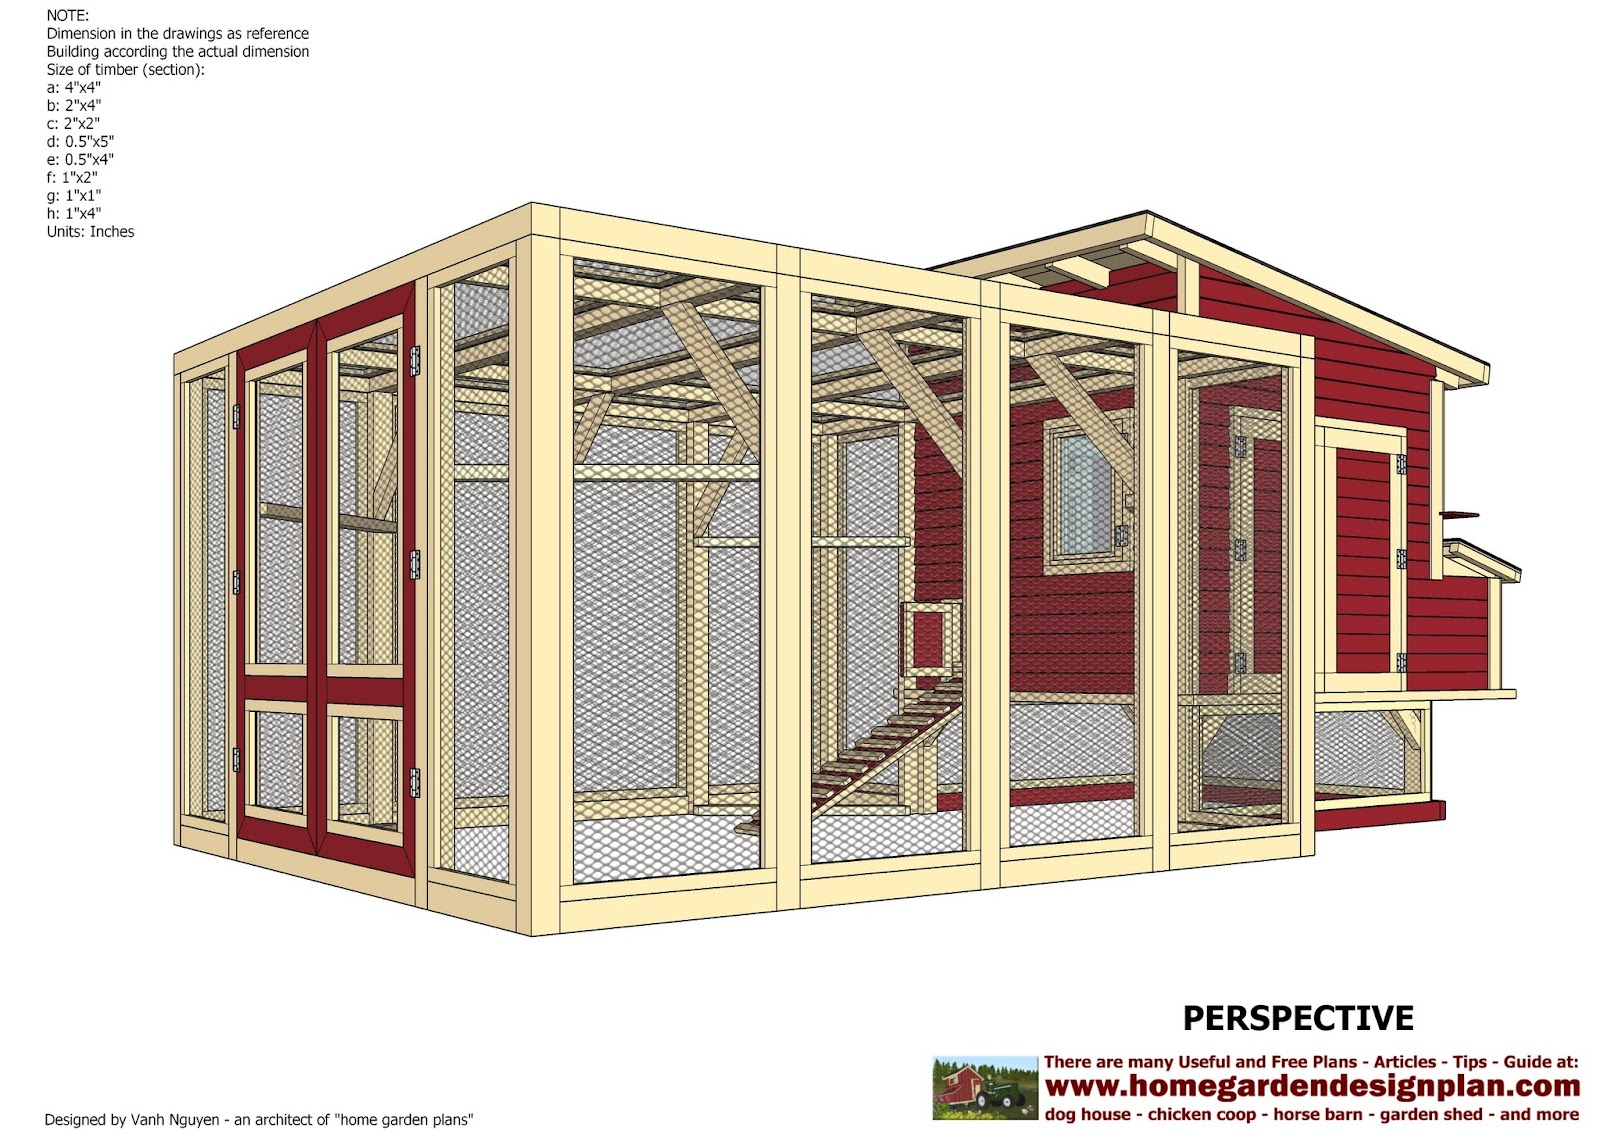 Diy chicken coop blog must see coop channel for Chicken coop plans free pdf